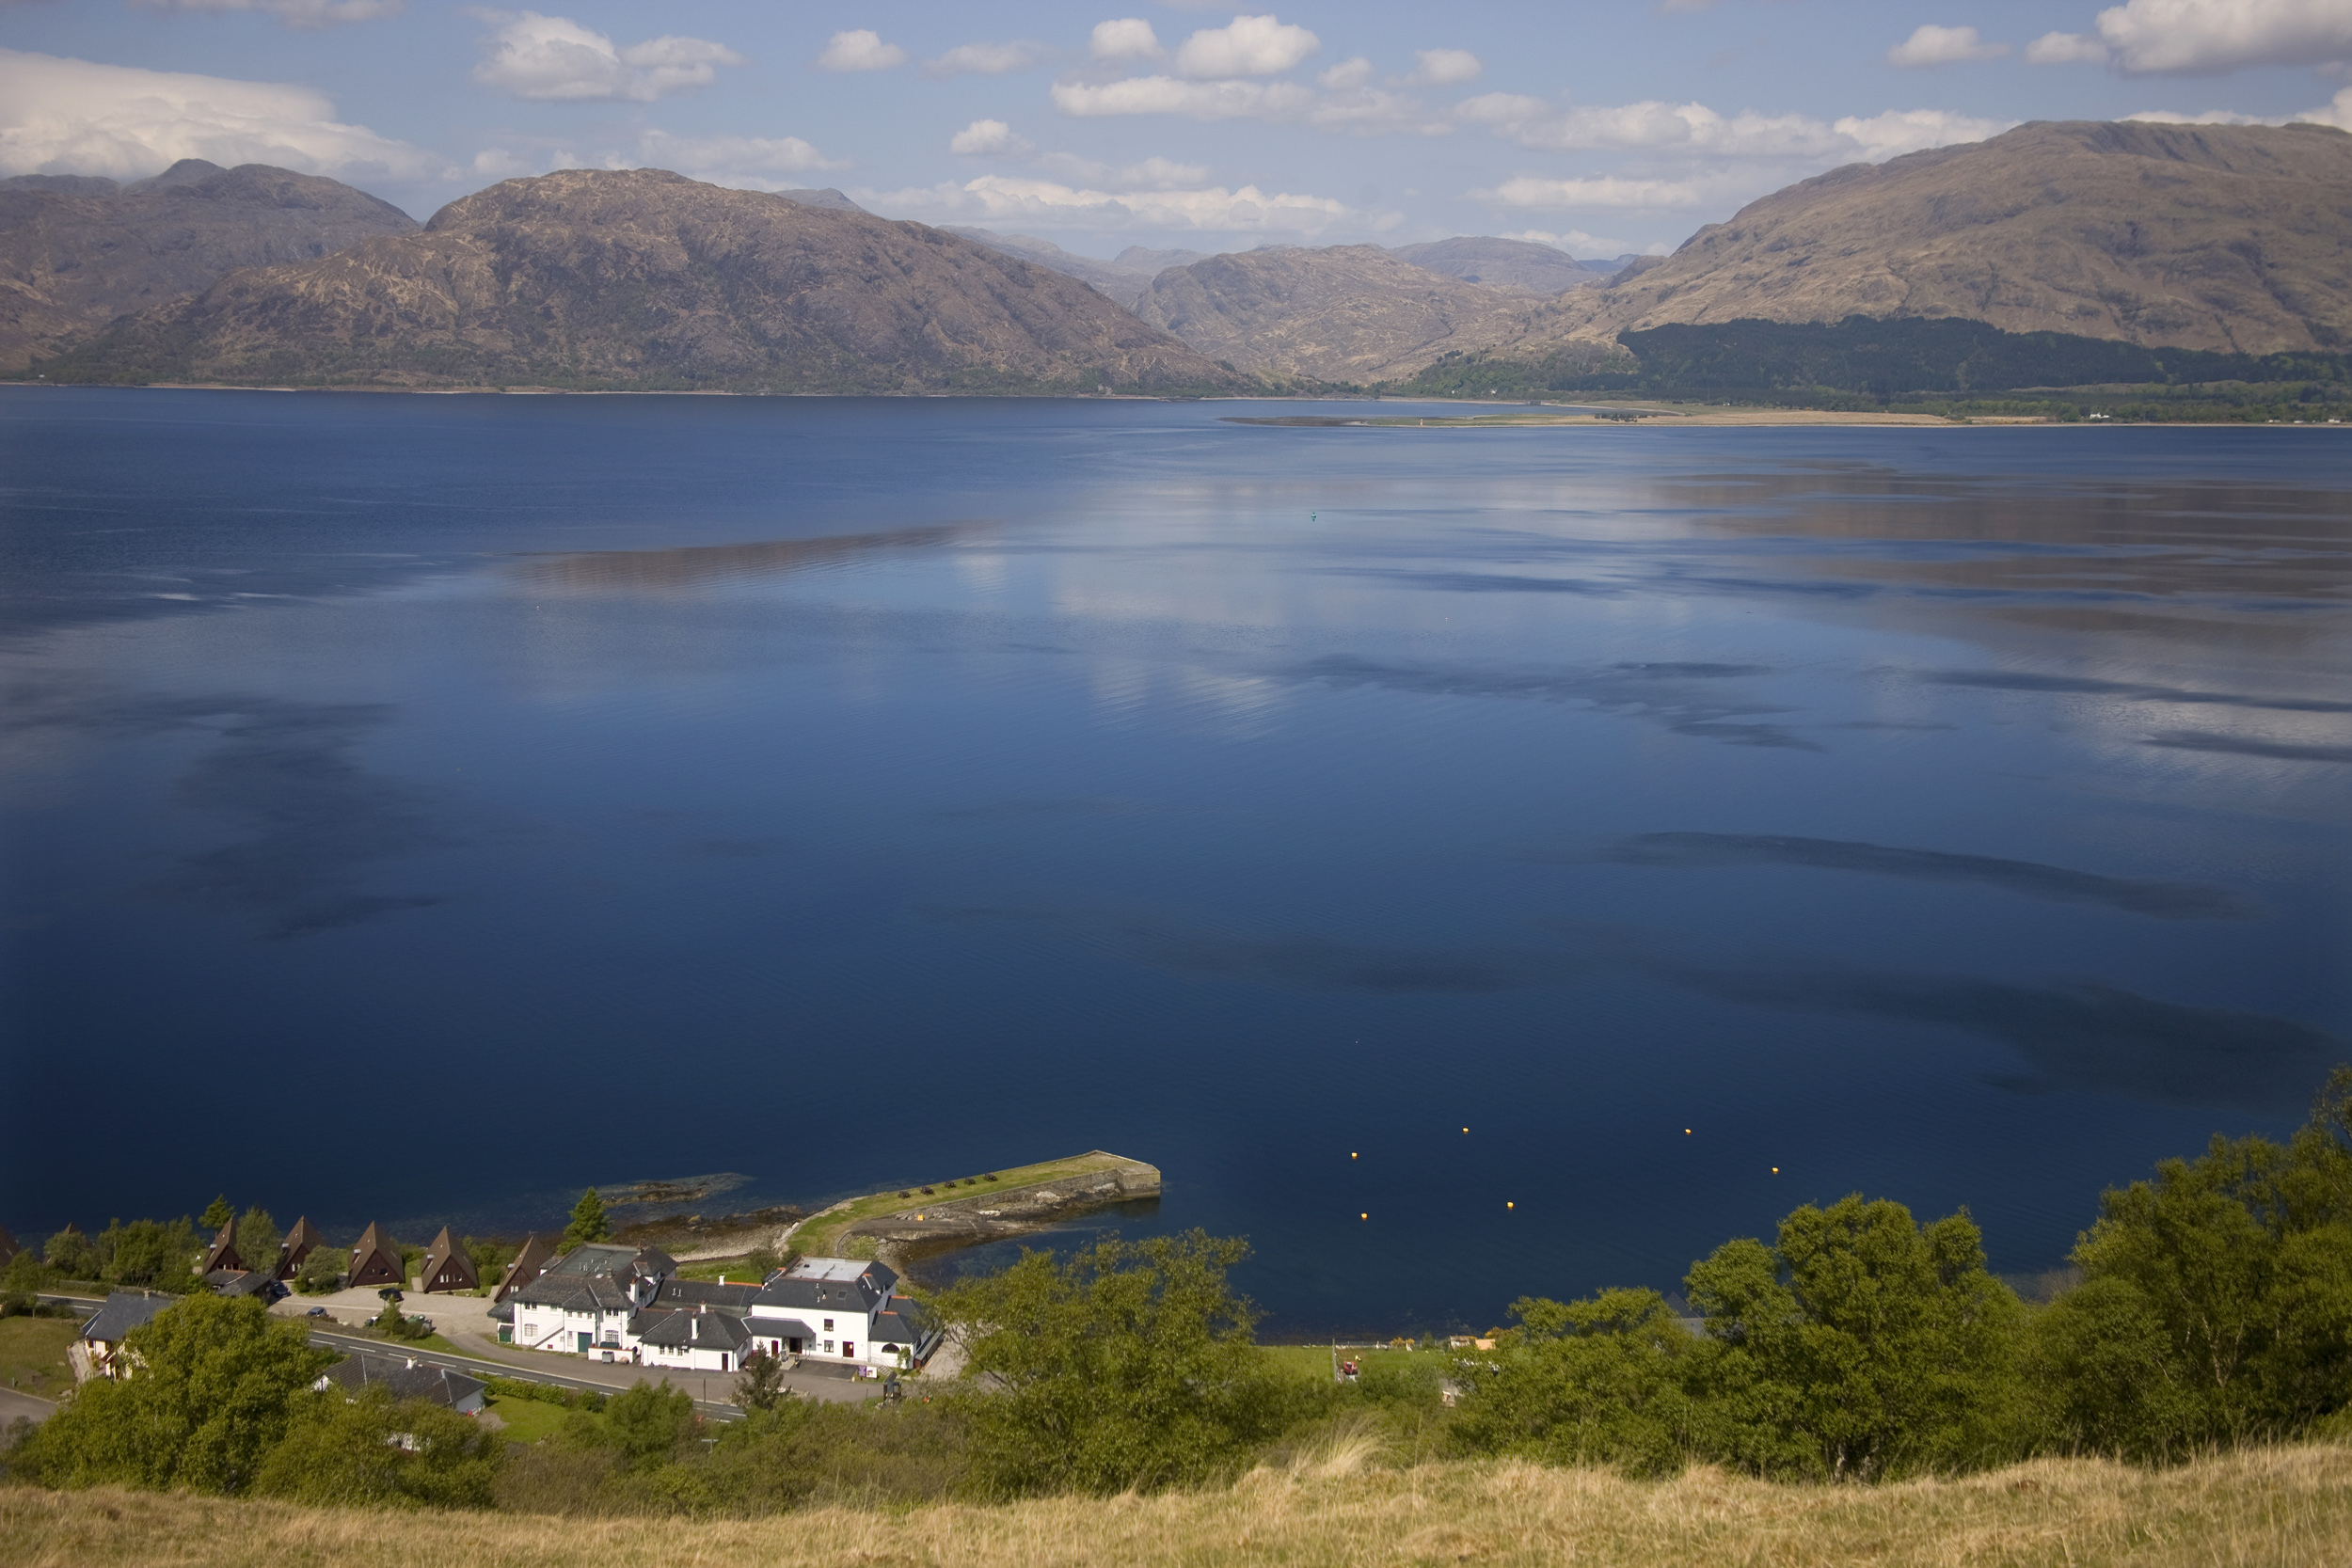 The local company, based at Garvan near Fort William, want to grow them at Loch Linnhe for a year then transfer them to their sites at Loch Eil